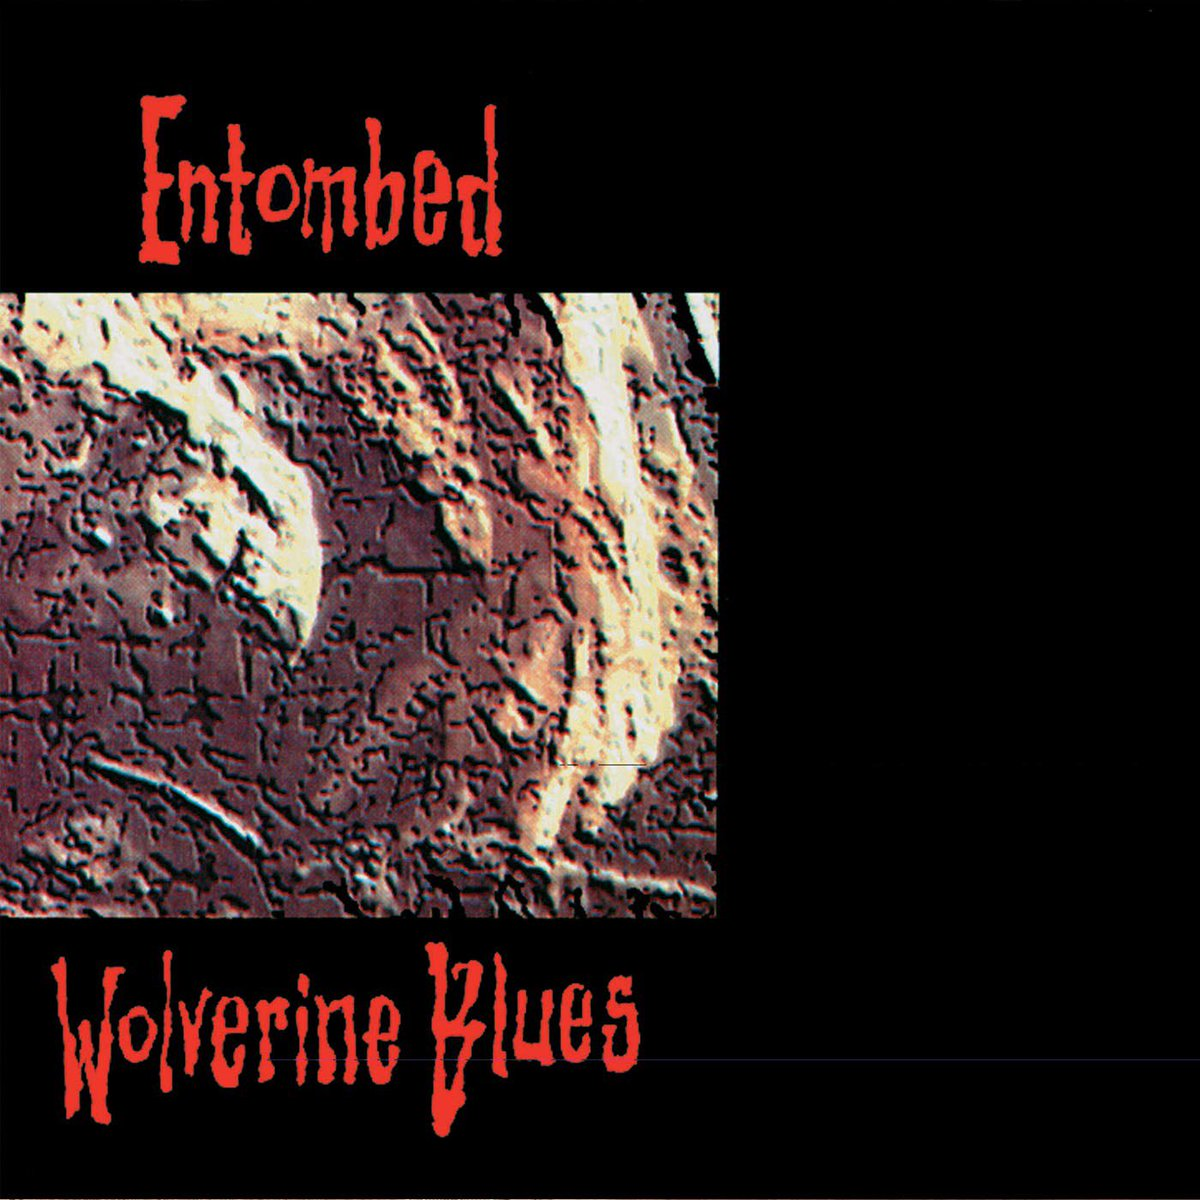 What do you make of Entombed's 'Wolverine Blues'?   #NowListening #Metal #MetalMusings #Entombed #Sweden #DeathNRoll https://t.co/SYCXCcZ19Q